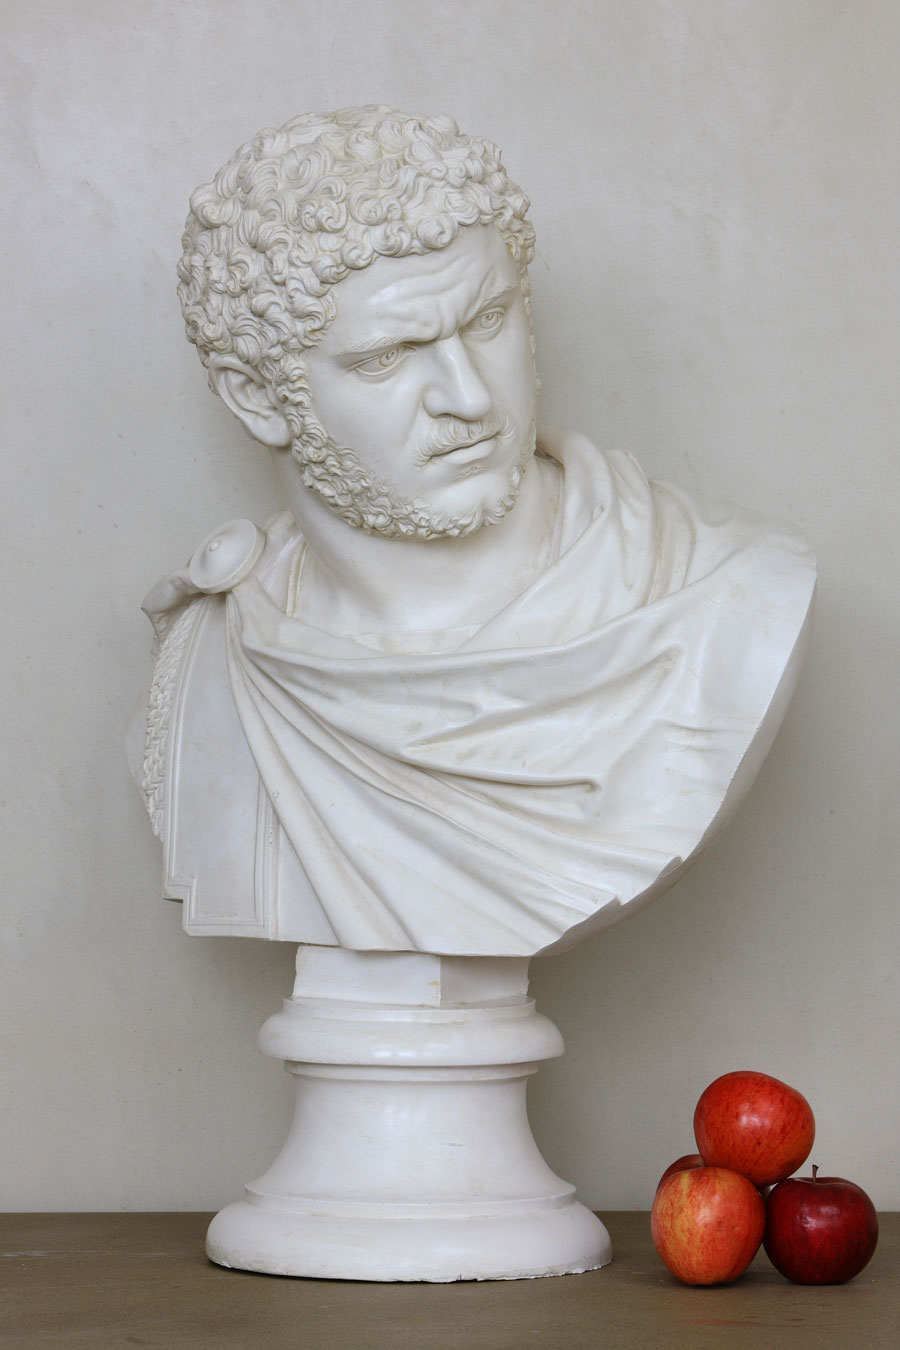 Copy of a Marble of The Emperor Caracalla